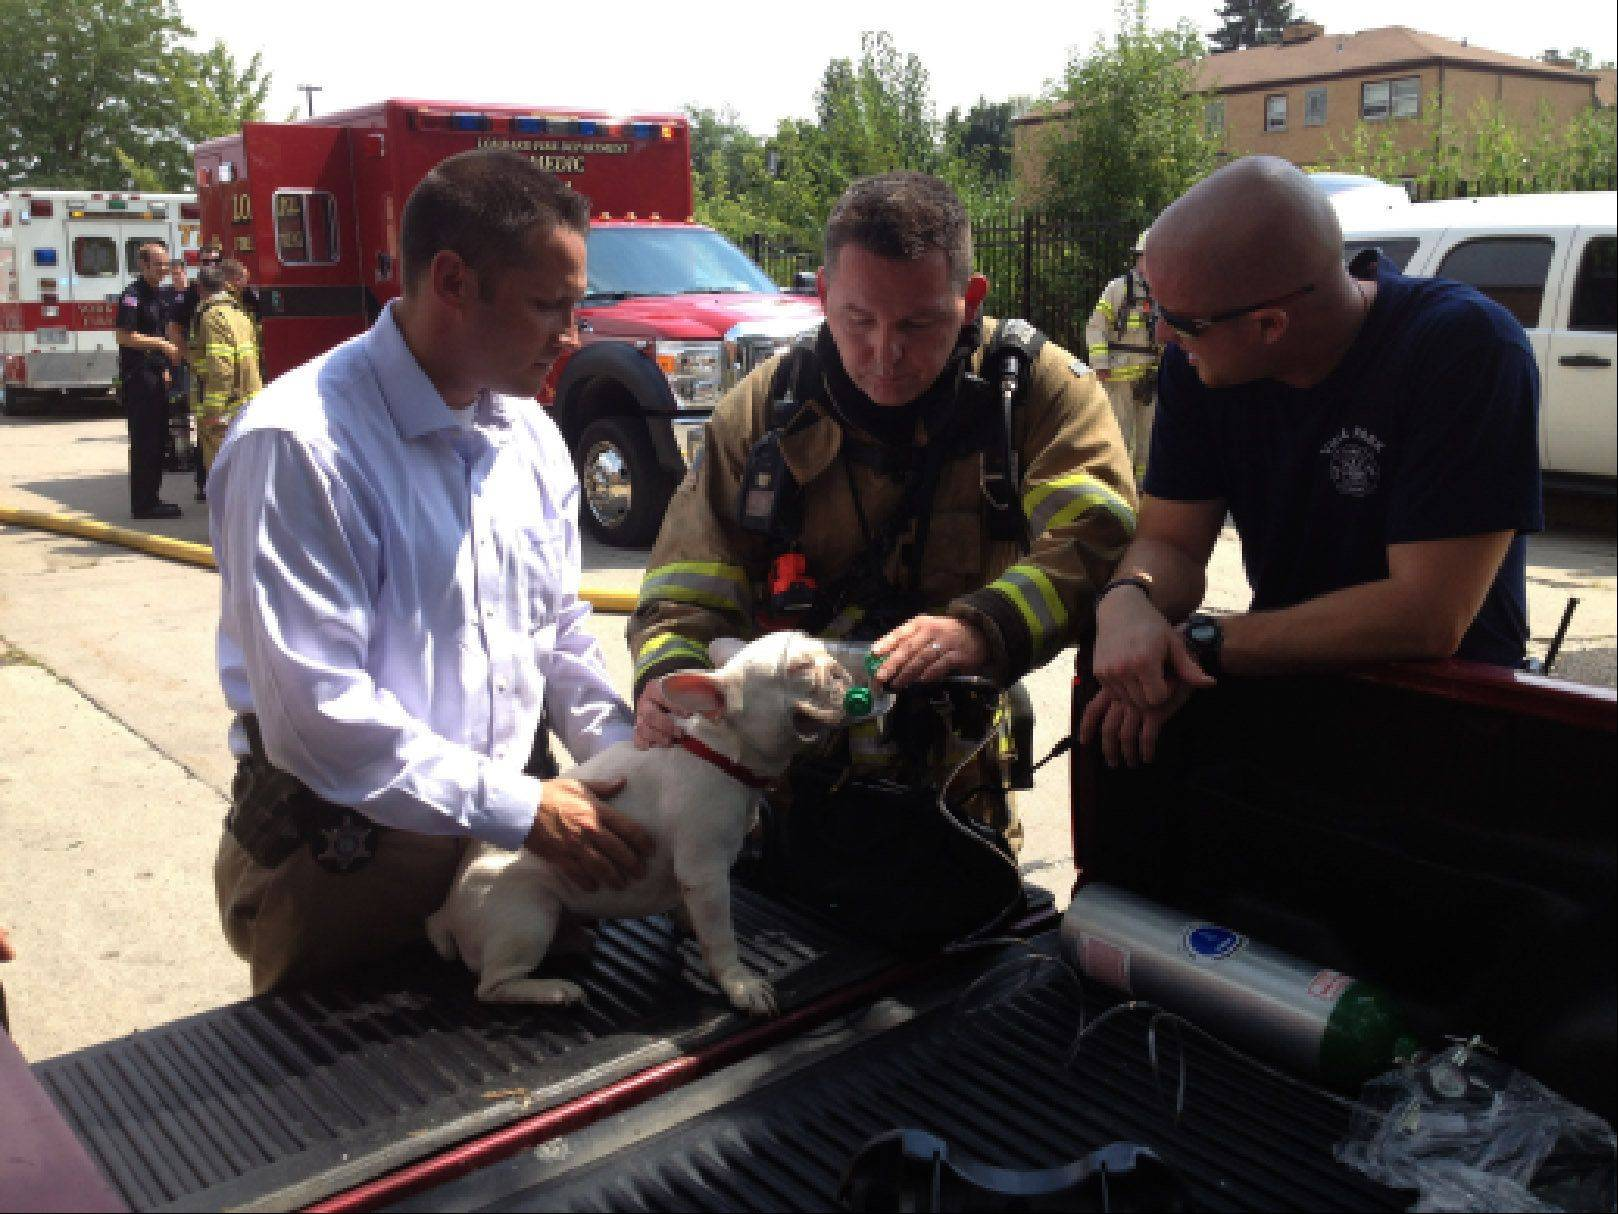 Firefighters treat a dog they rescued from a burning apartment building Monday afternoon in Villa Park.